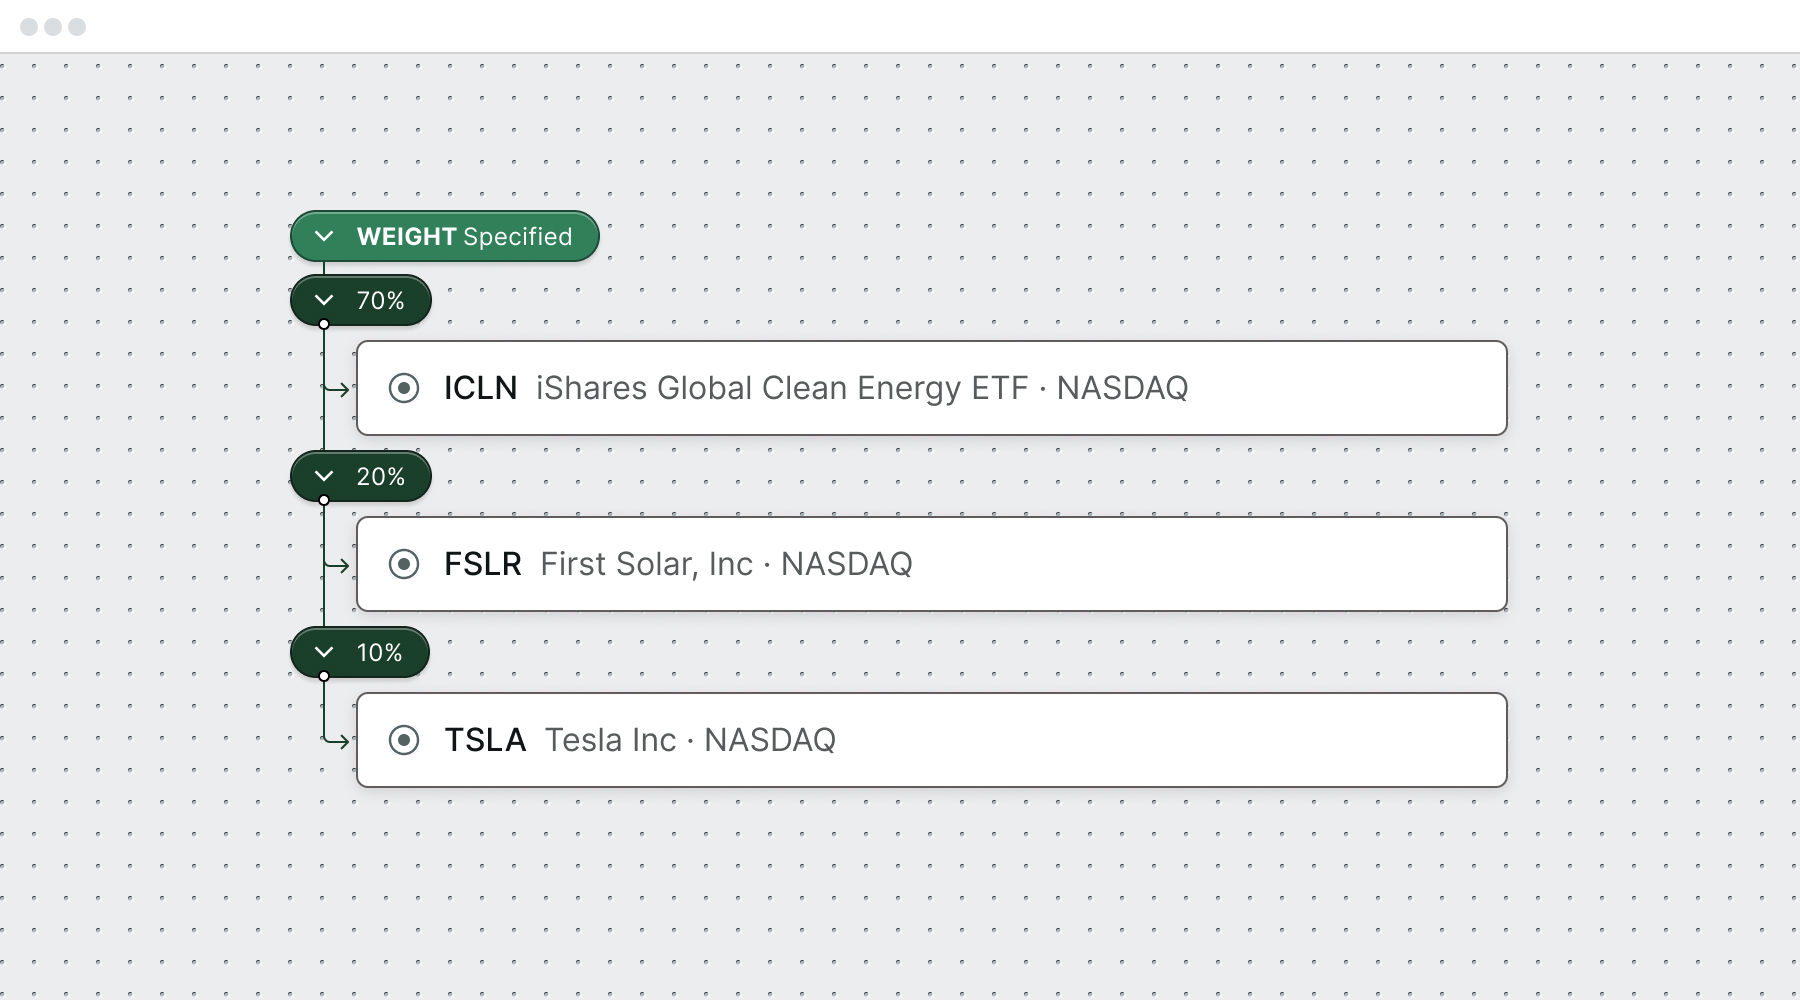 Specified weighting added to those stock picks: 70% to ICLN, 20% to FSLR and 10% to TSLA.